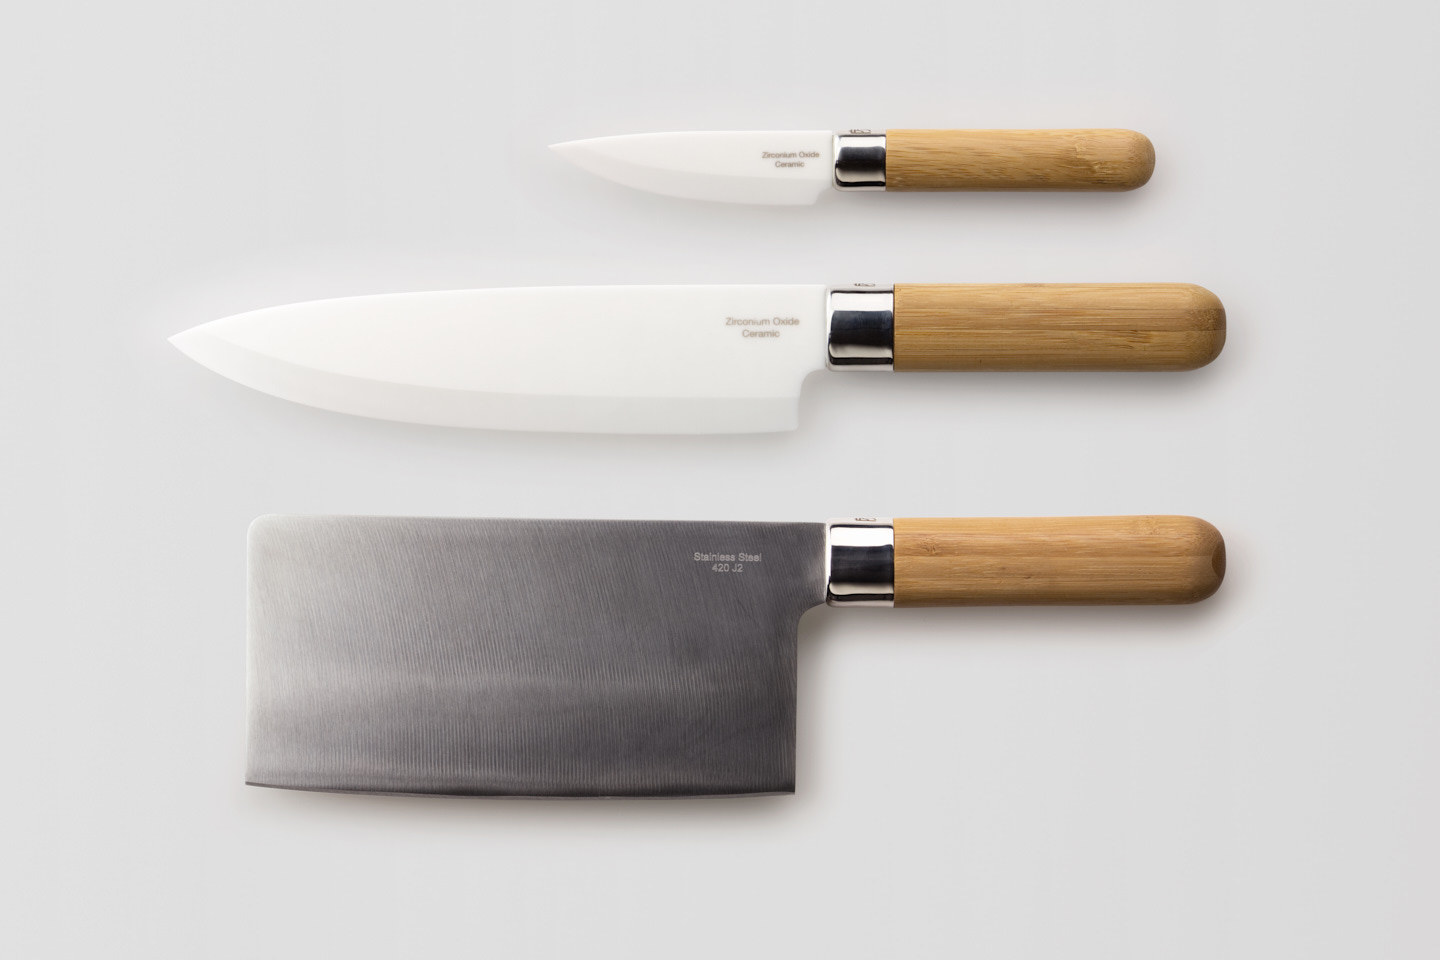 Kitchen Knives - Office for Product Design